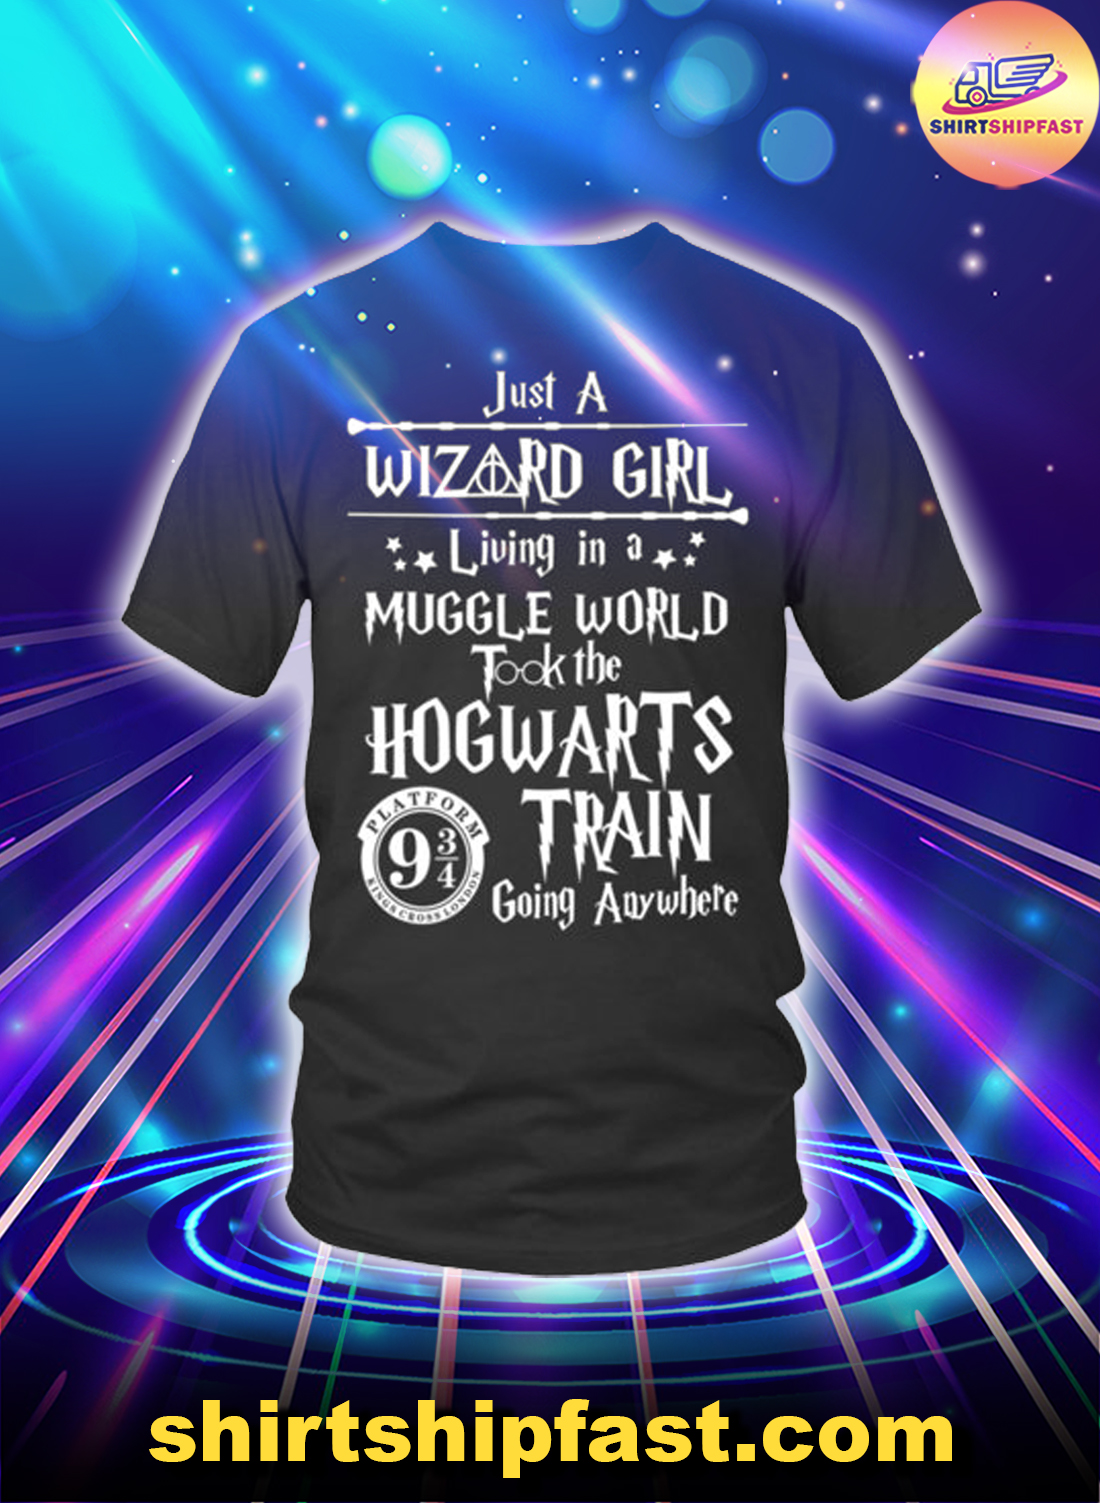 Just a wizard girl living in a muggle world took the Hogwarts train going anywhere shirt